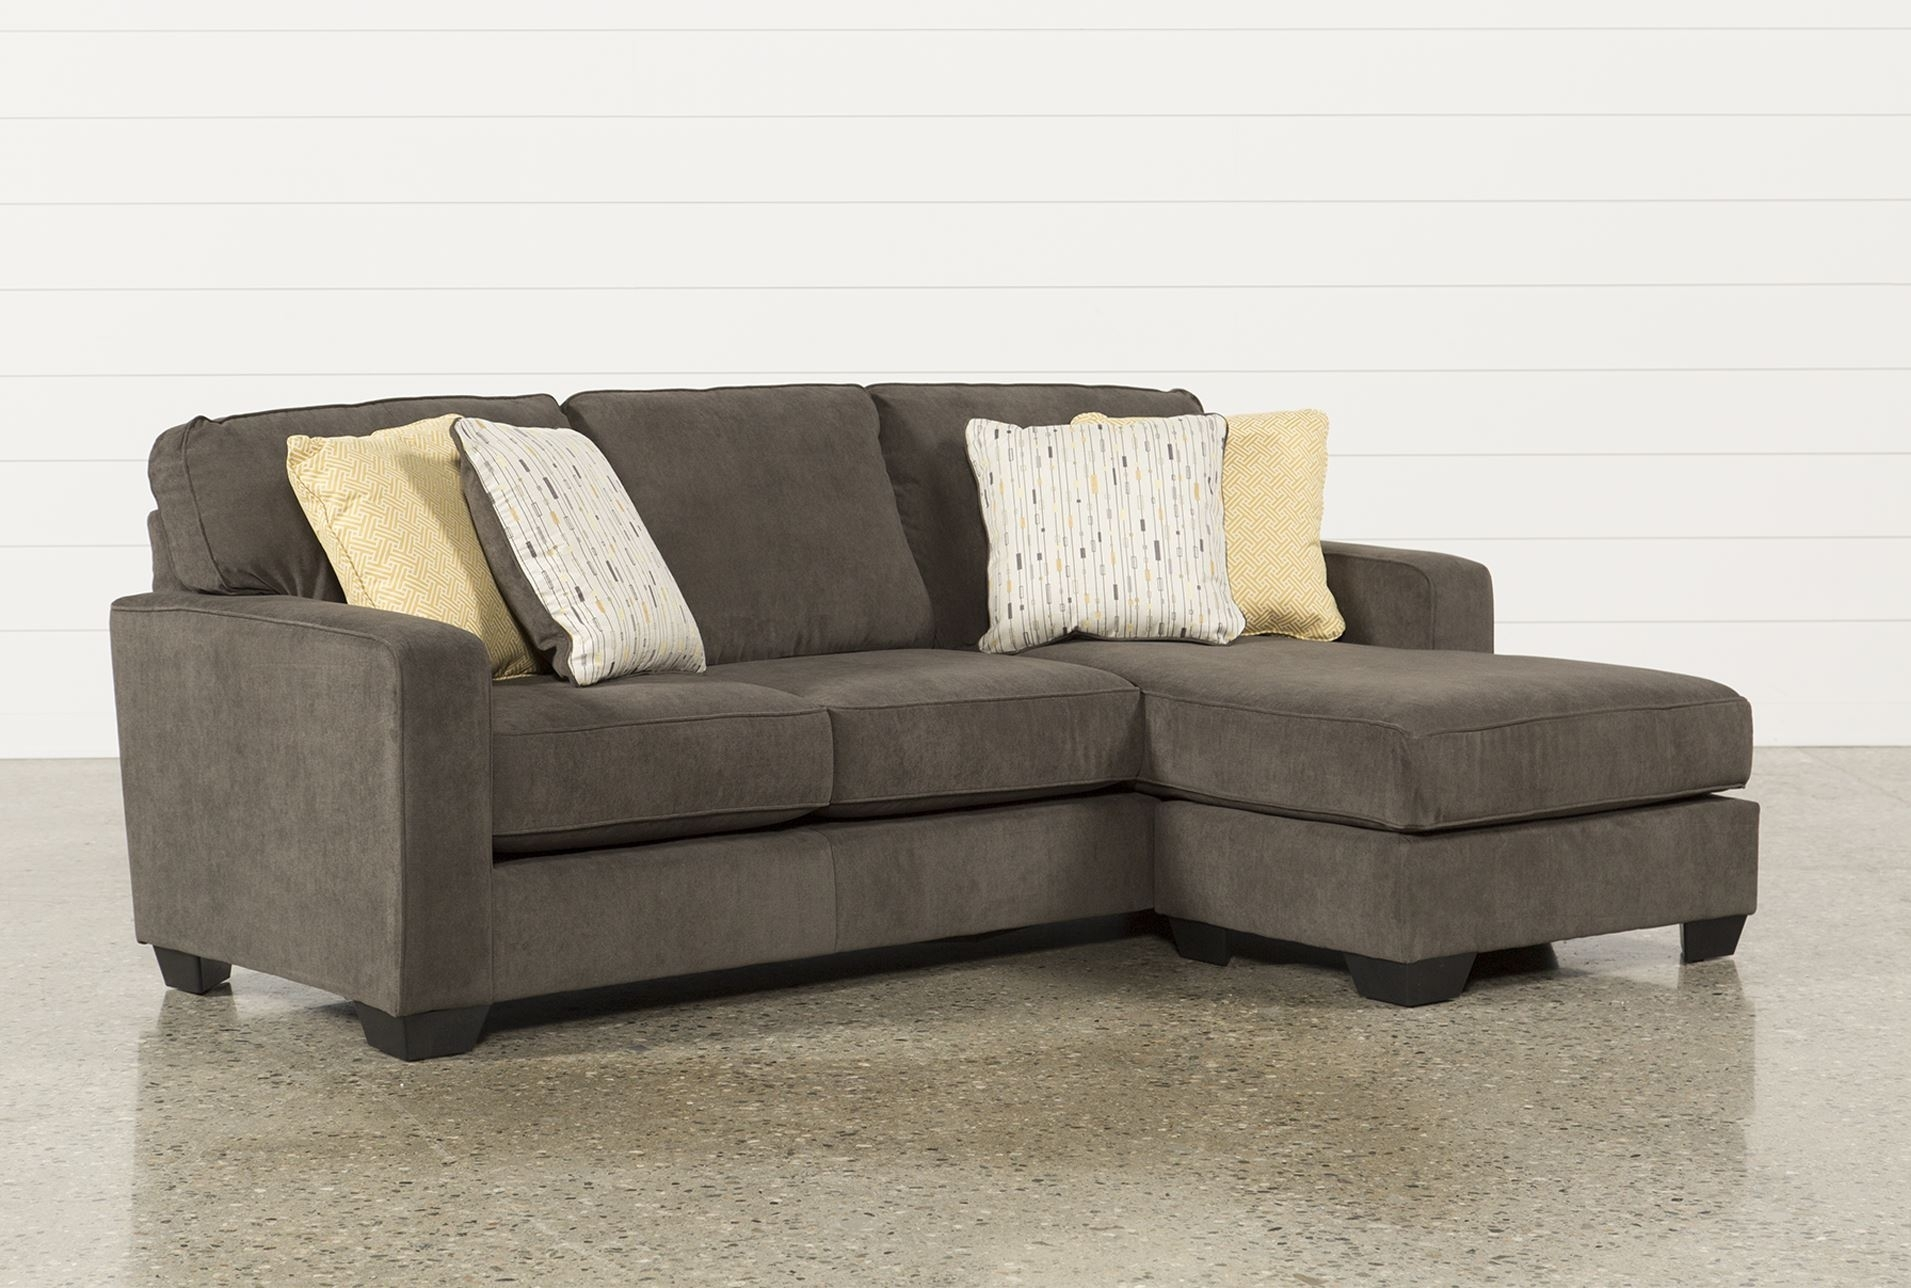 Modern Chesterfield Sofa Distressed Table Ashley Benton Blu Dot throughout Benton 4 Piece Sectionals (Image 16 of 30)